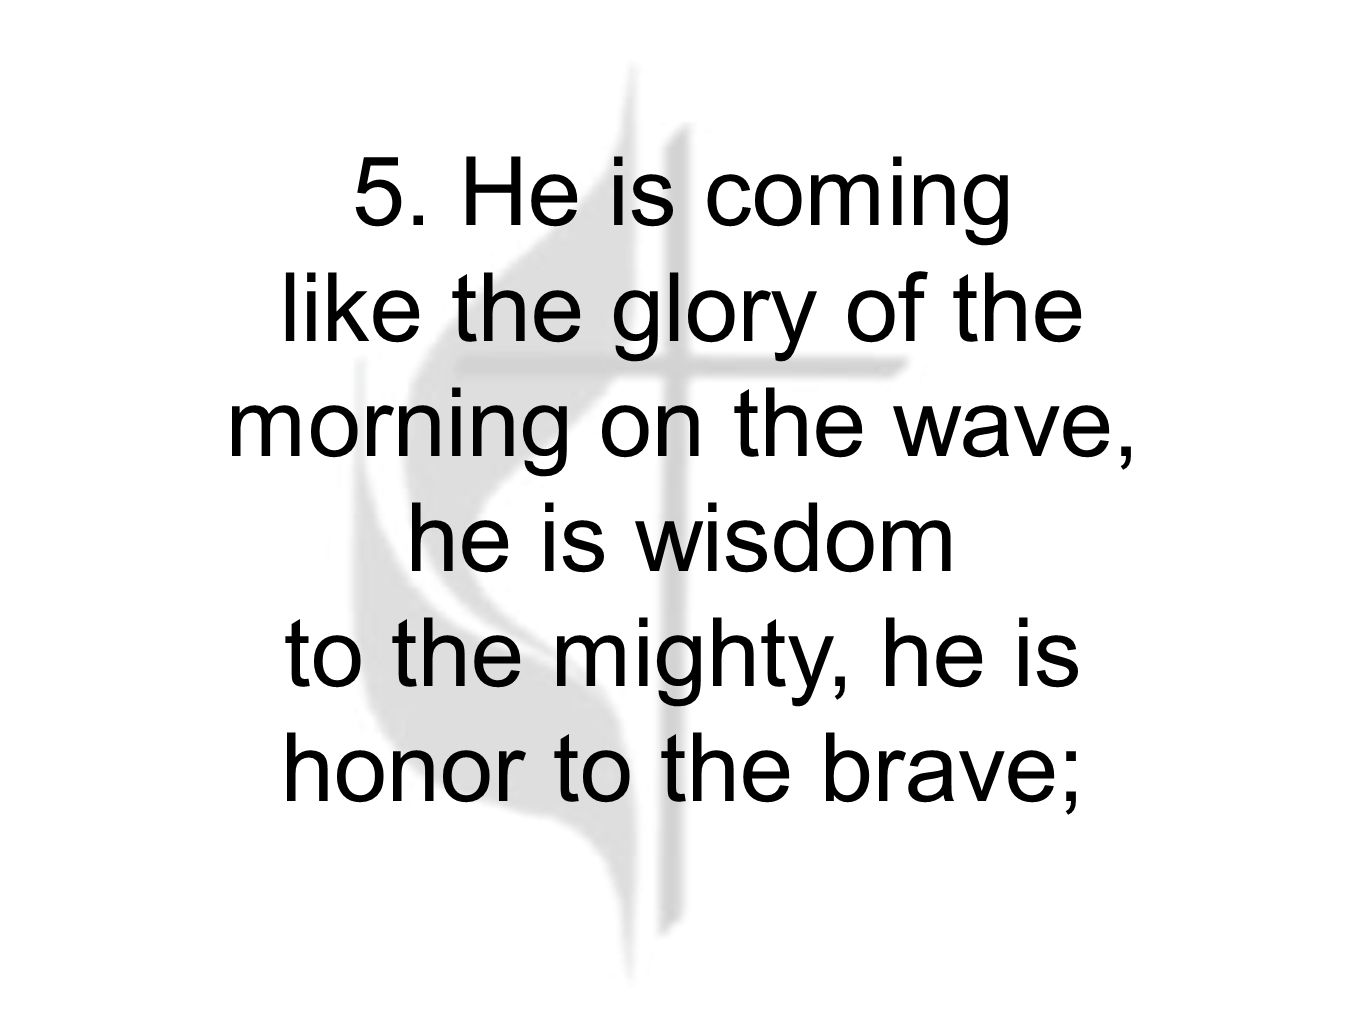 5. He is coming like the glory of the morning on the wave, he is wisdom to the mighty, he is honor to the brave; The Battle Hymn (5)